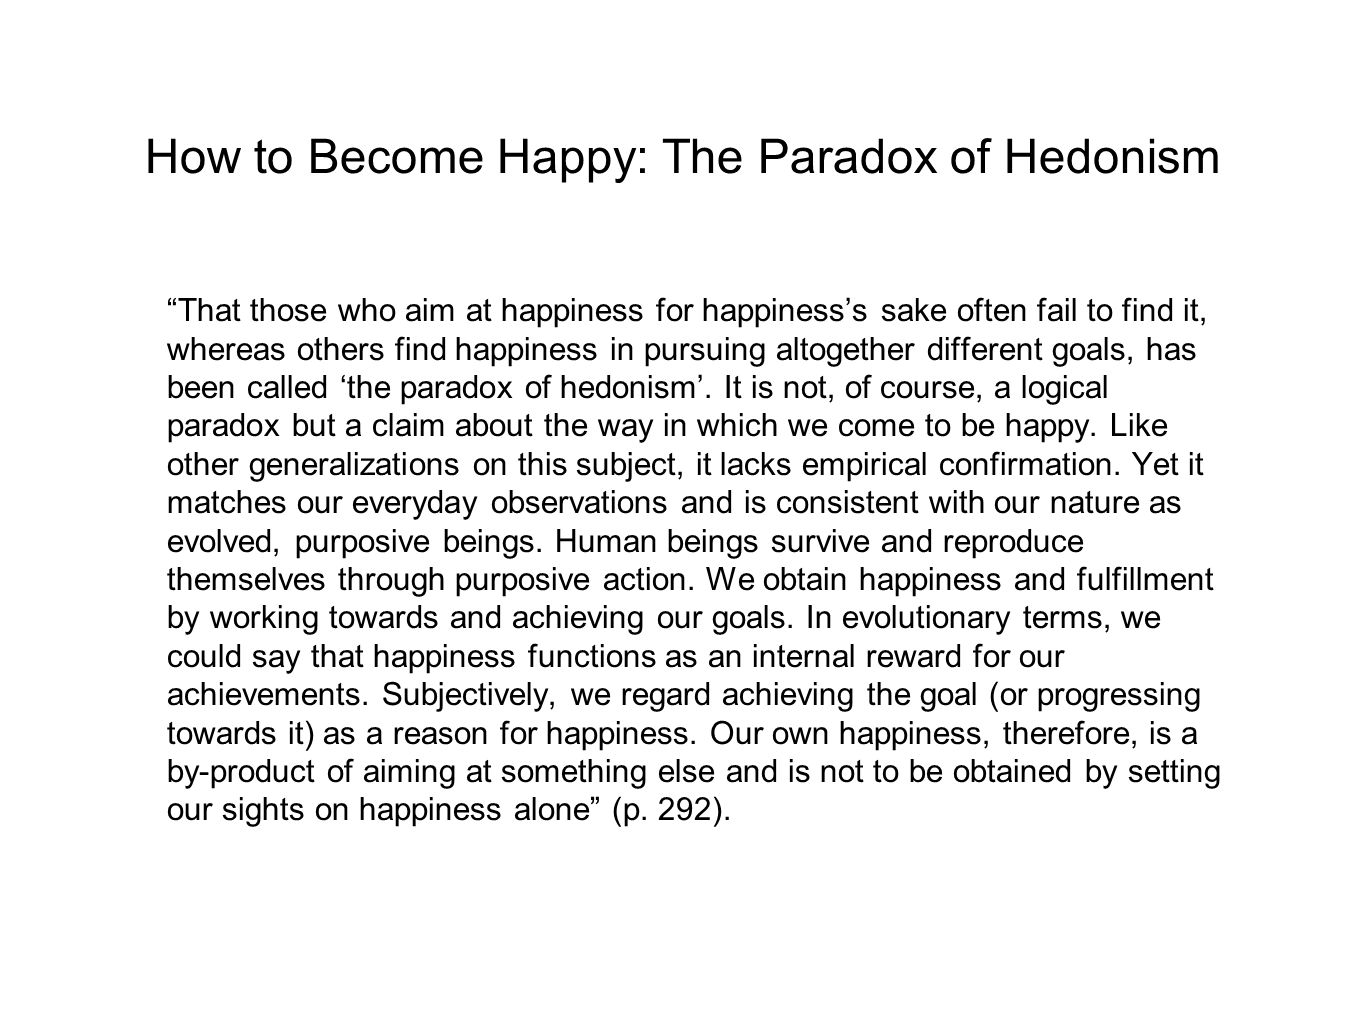 How to Become Happy: The Paradox of Hedonism